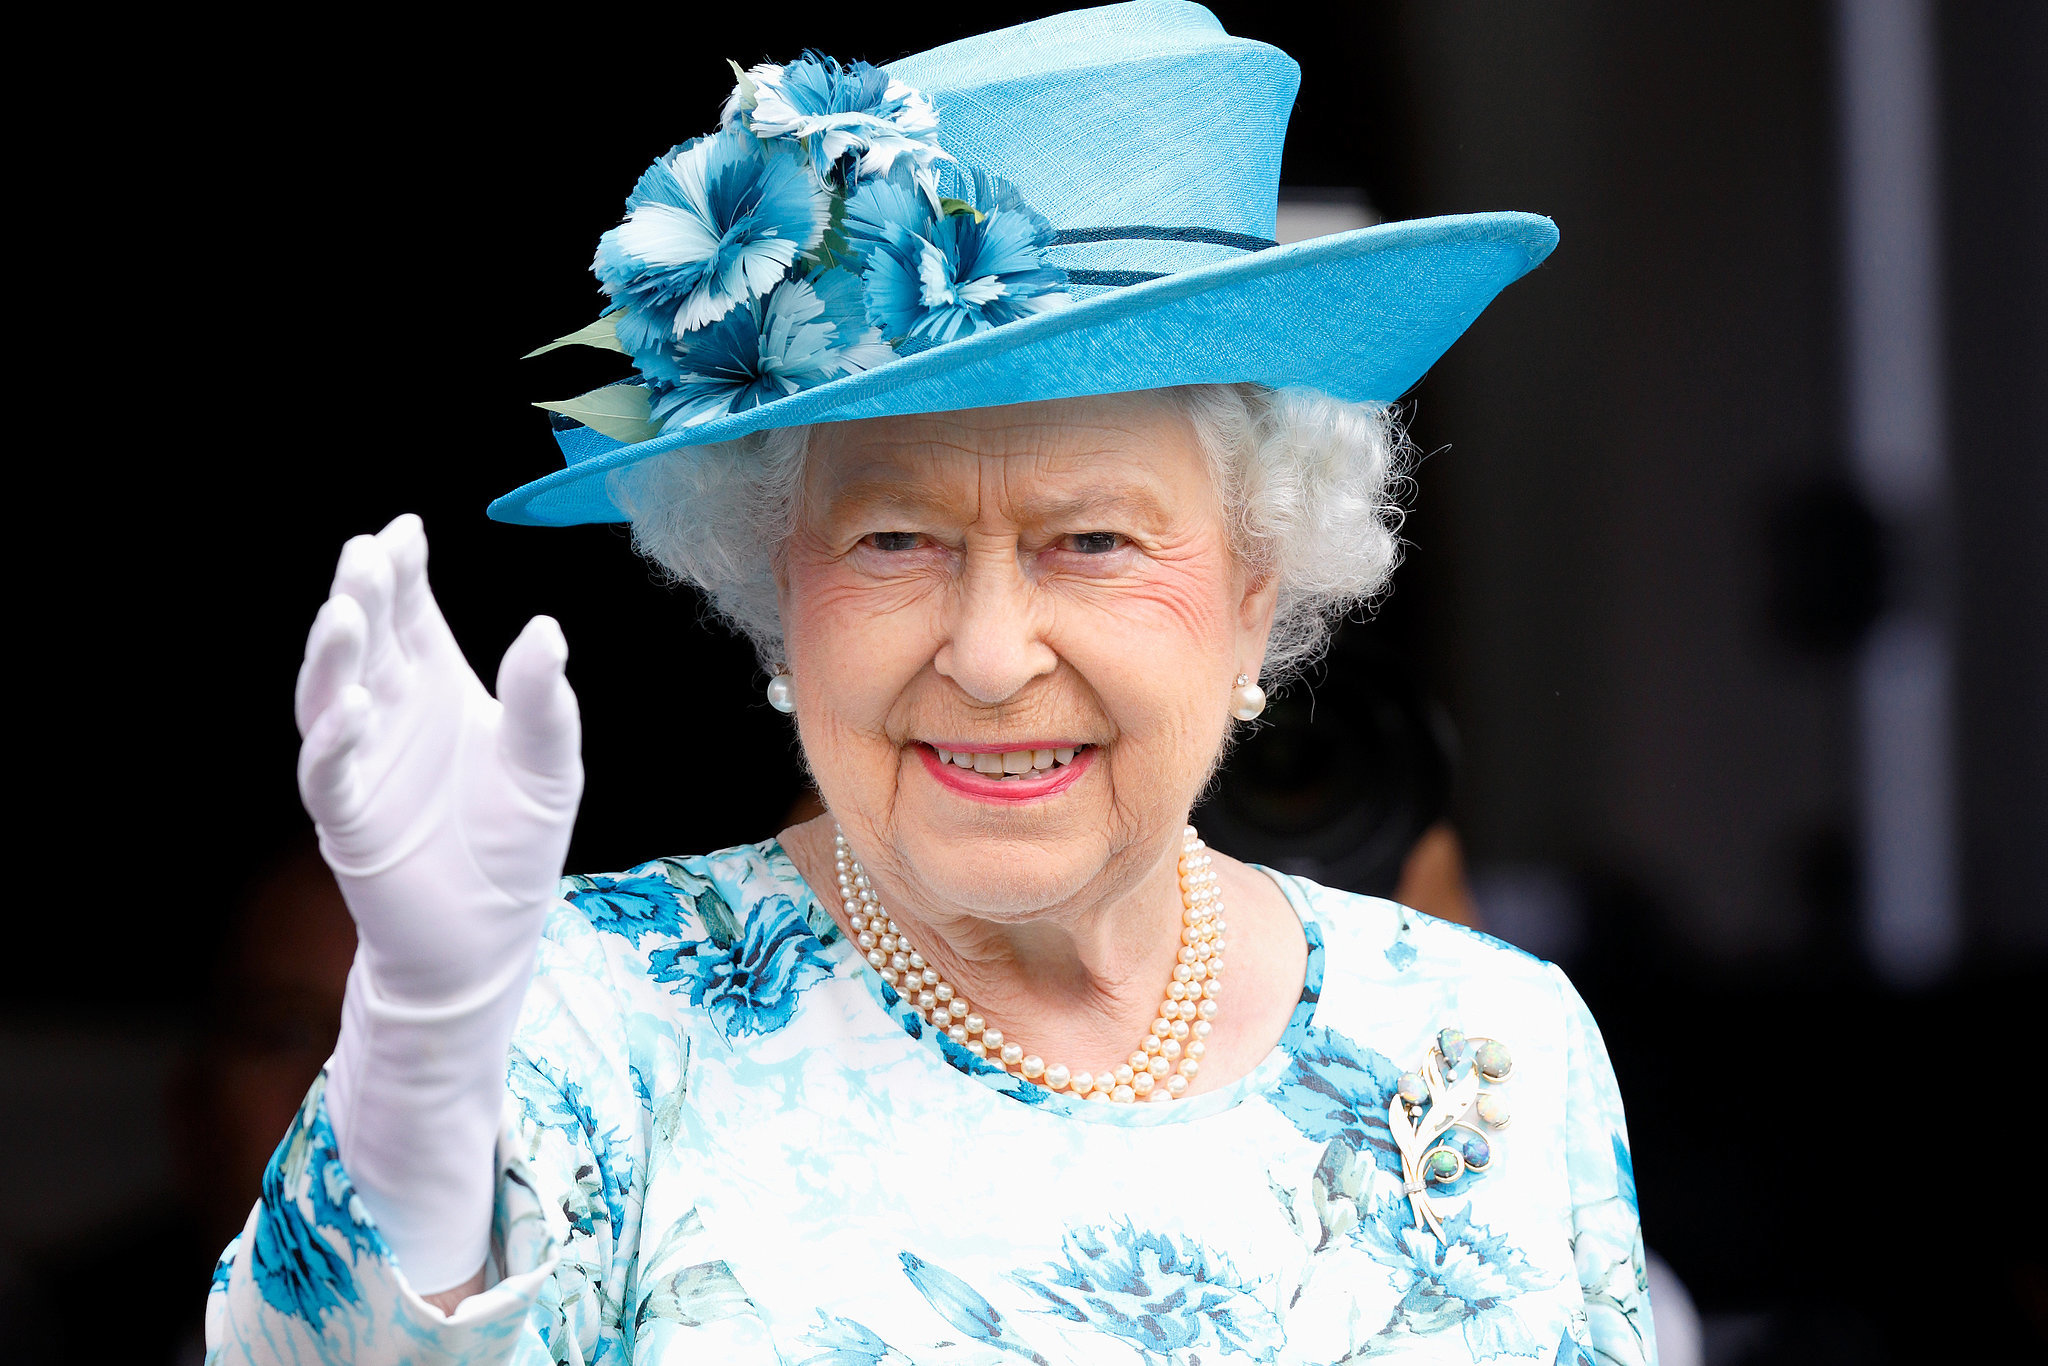 Queen Elizabeth Redeems Herself in the Eyes of UK People with Her Royal Assent of New Pro-LGBT Motion by the UK Parliament!